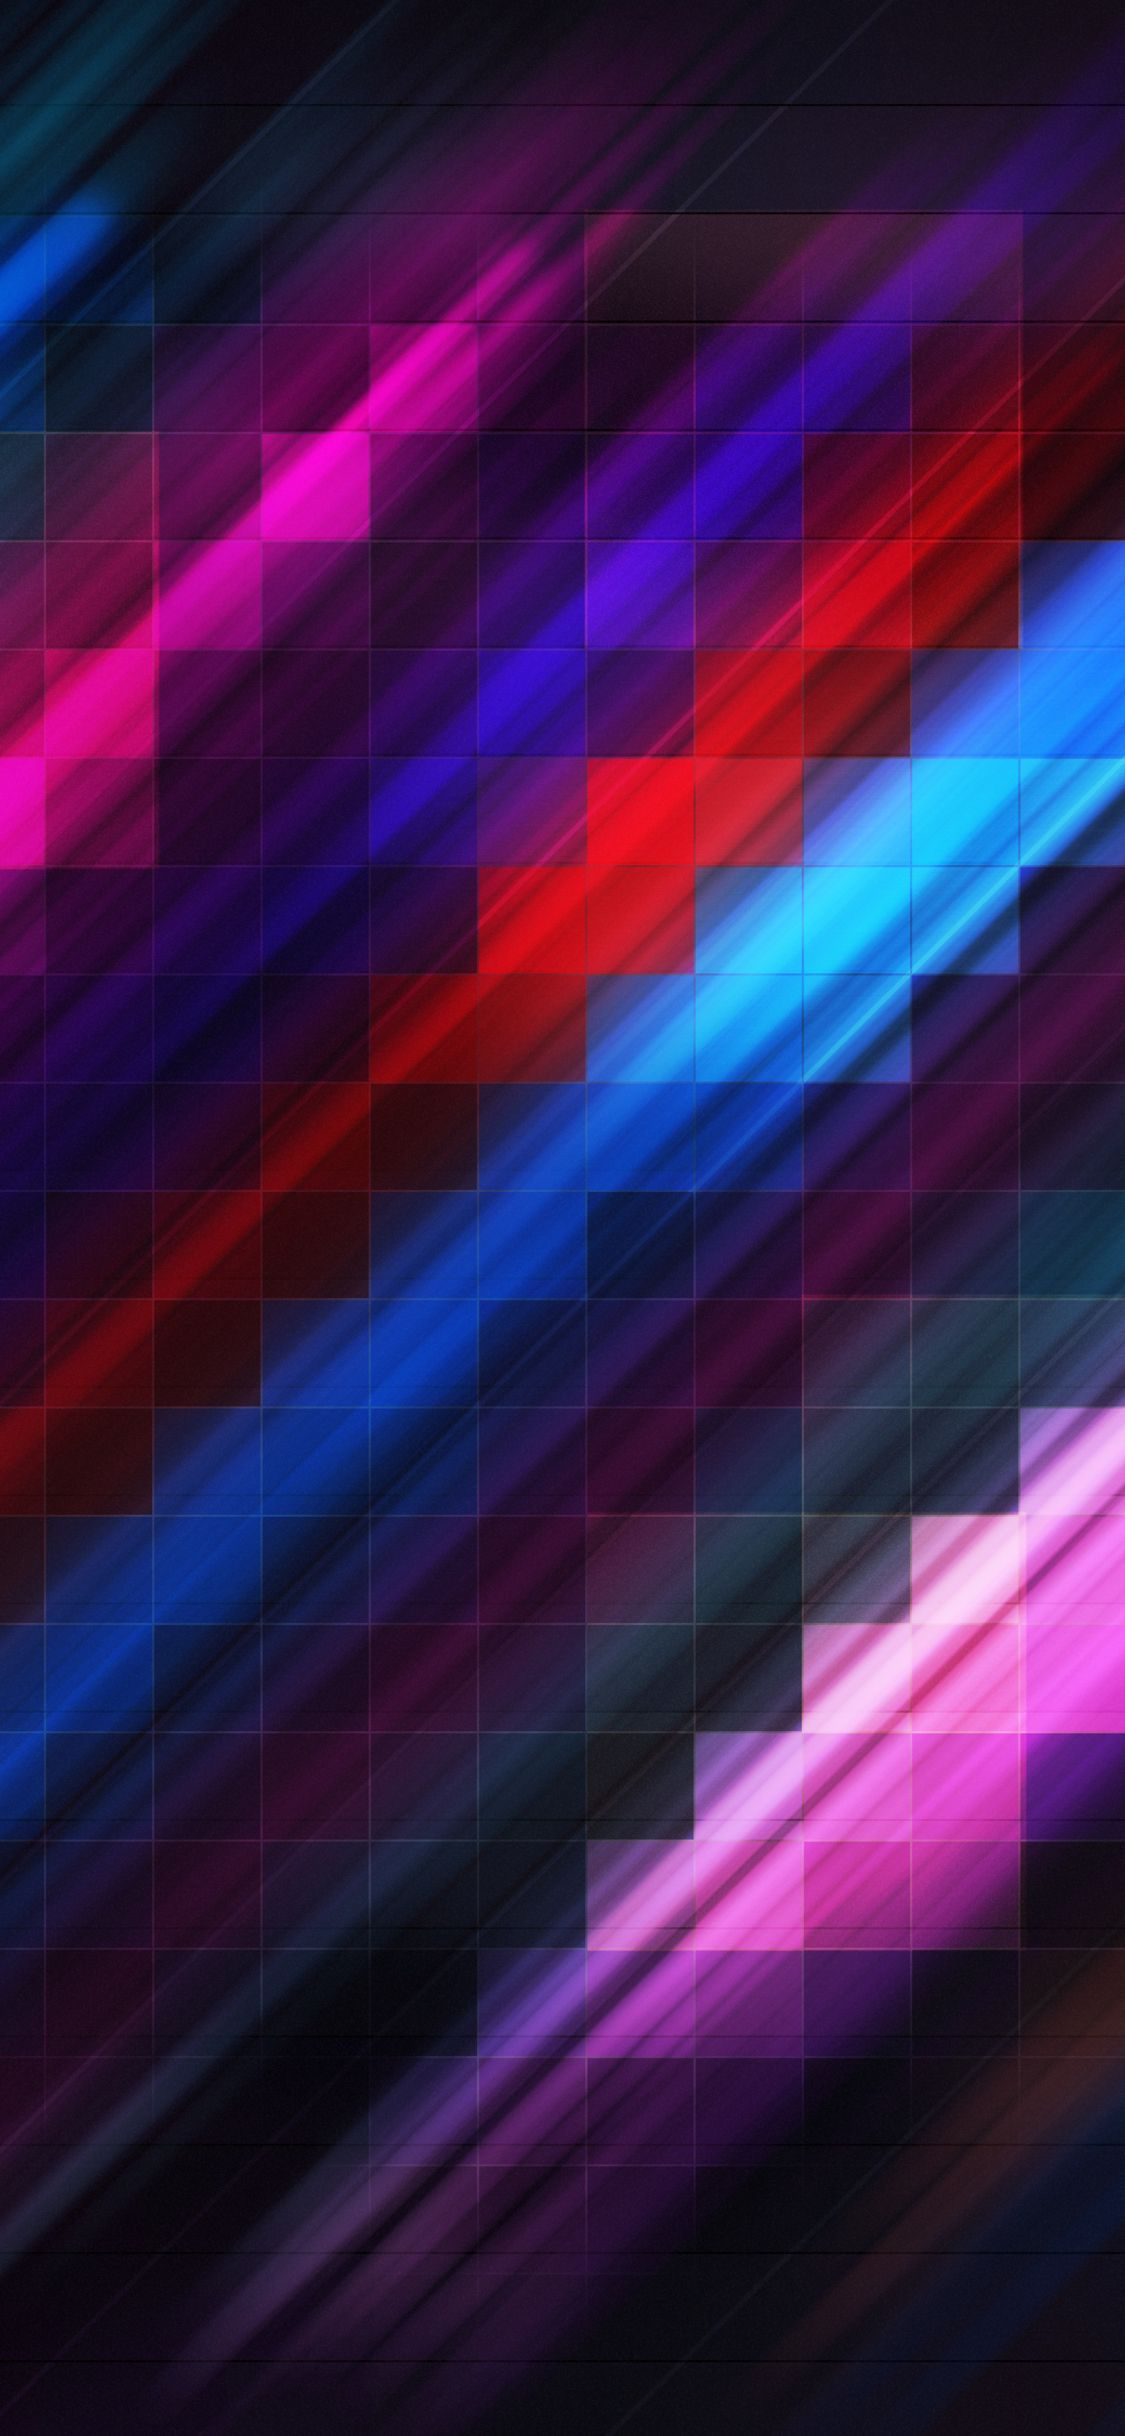 Grid Abstract Colorful 4k In 1125x2436 Resolution Abstract